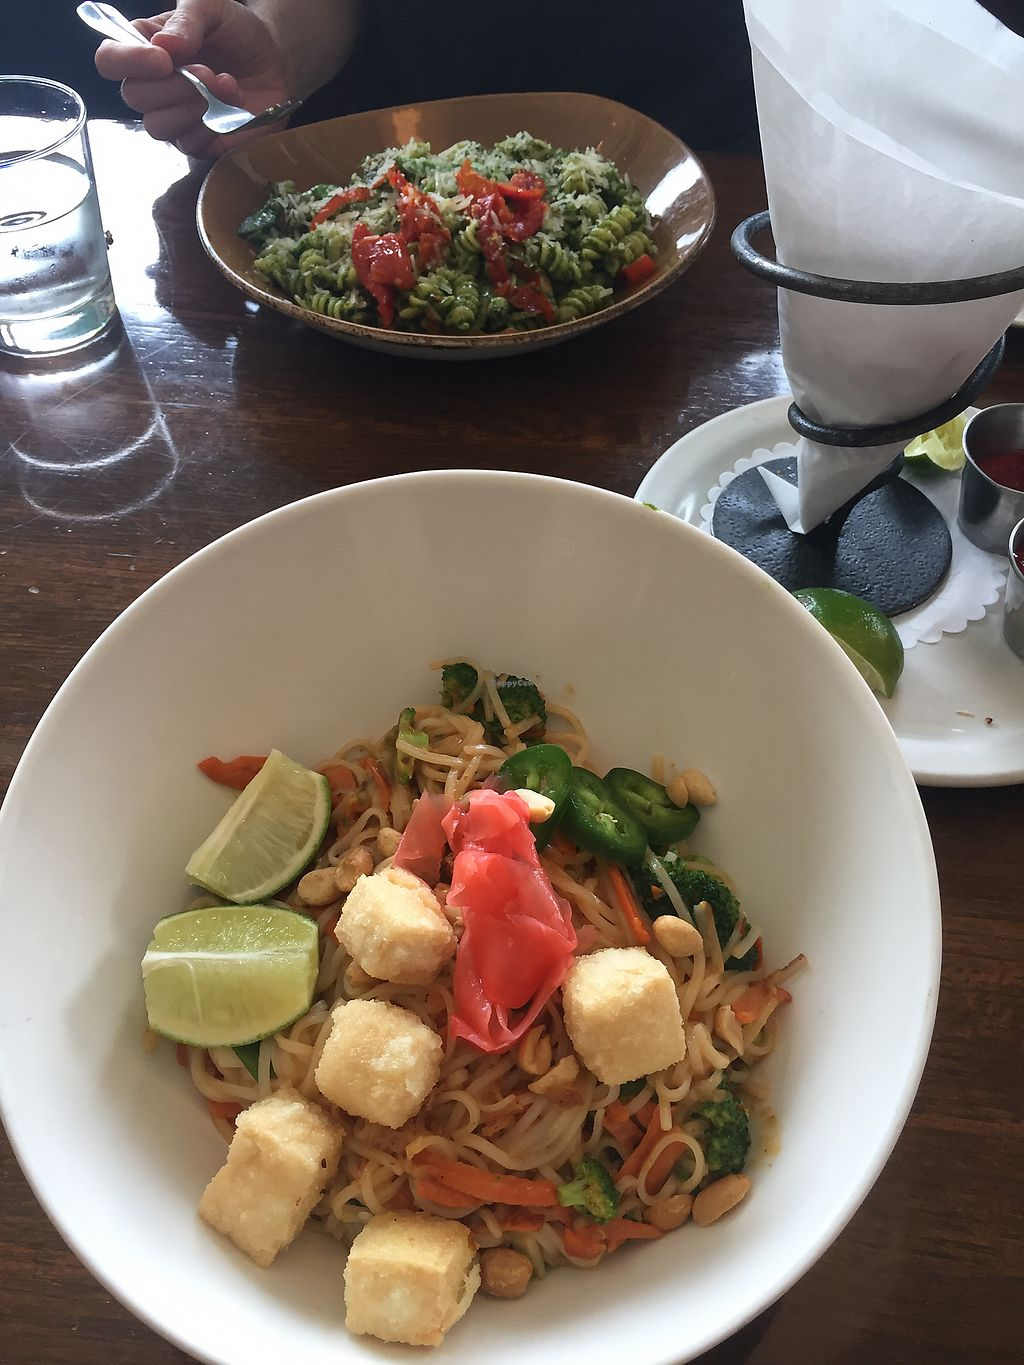 """Photo of Blind Faith Cafe  by <a href=""""/members/profile/Vitaliya"""">Vitaliya</a> <br/>Peanut noodle... spicier than it looks <br/> July 3, 2017  - <a href='/contact/abuse/image/1959/276200'>Report</a>"""